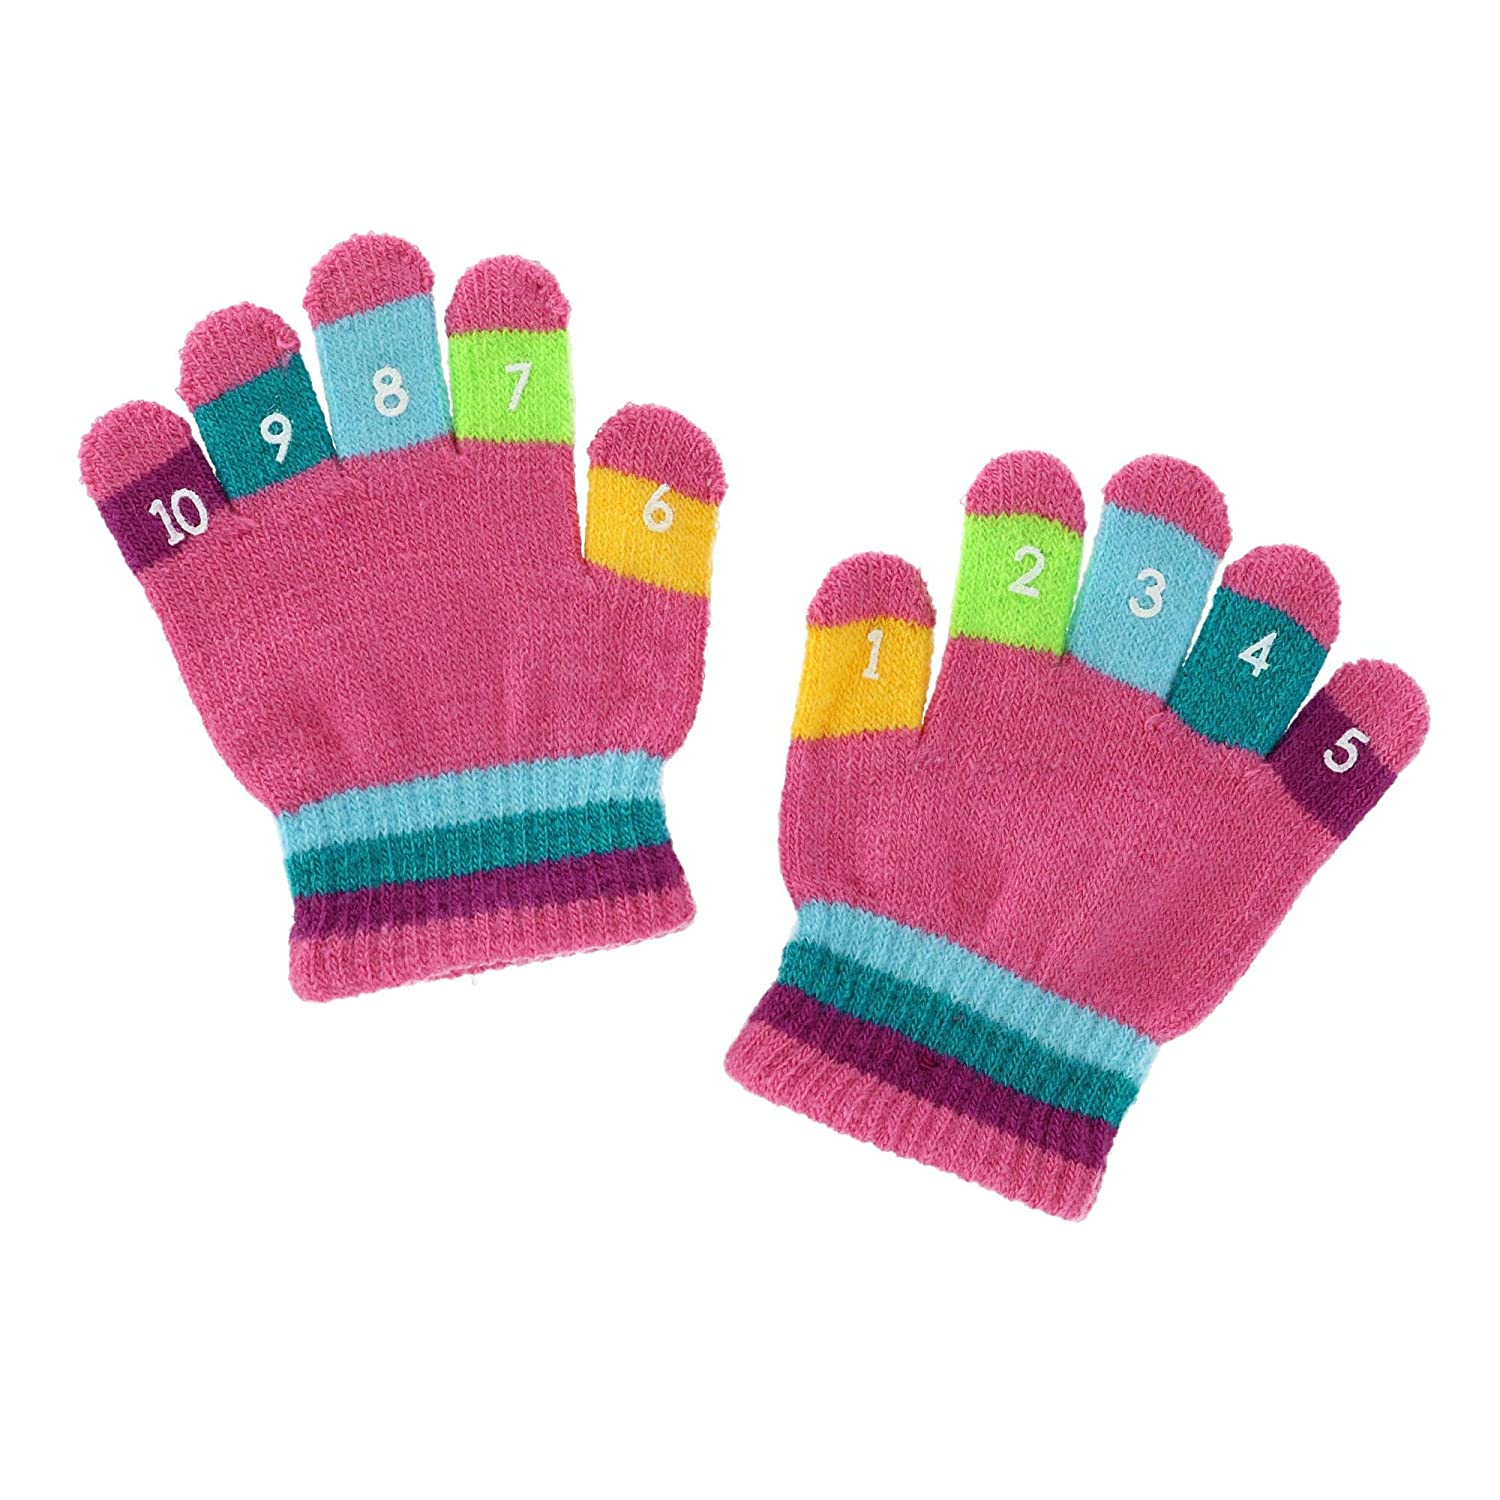 Grand Sierra Toddler 2-4T Knit Stretch Counting Gloves Blue